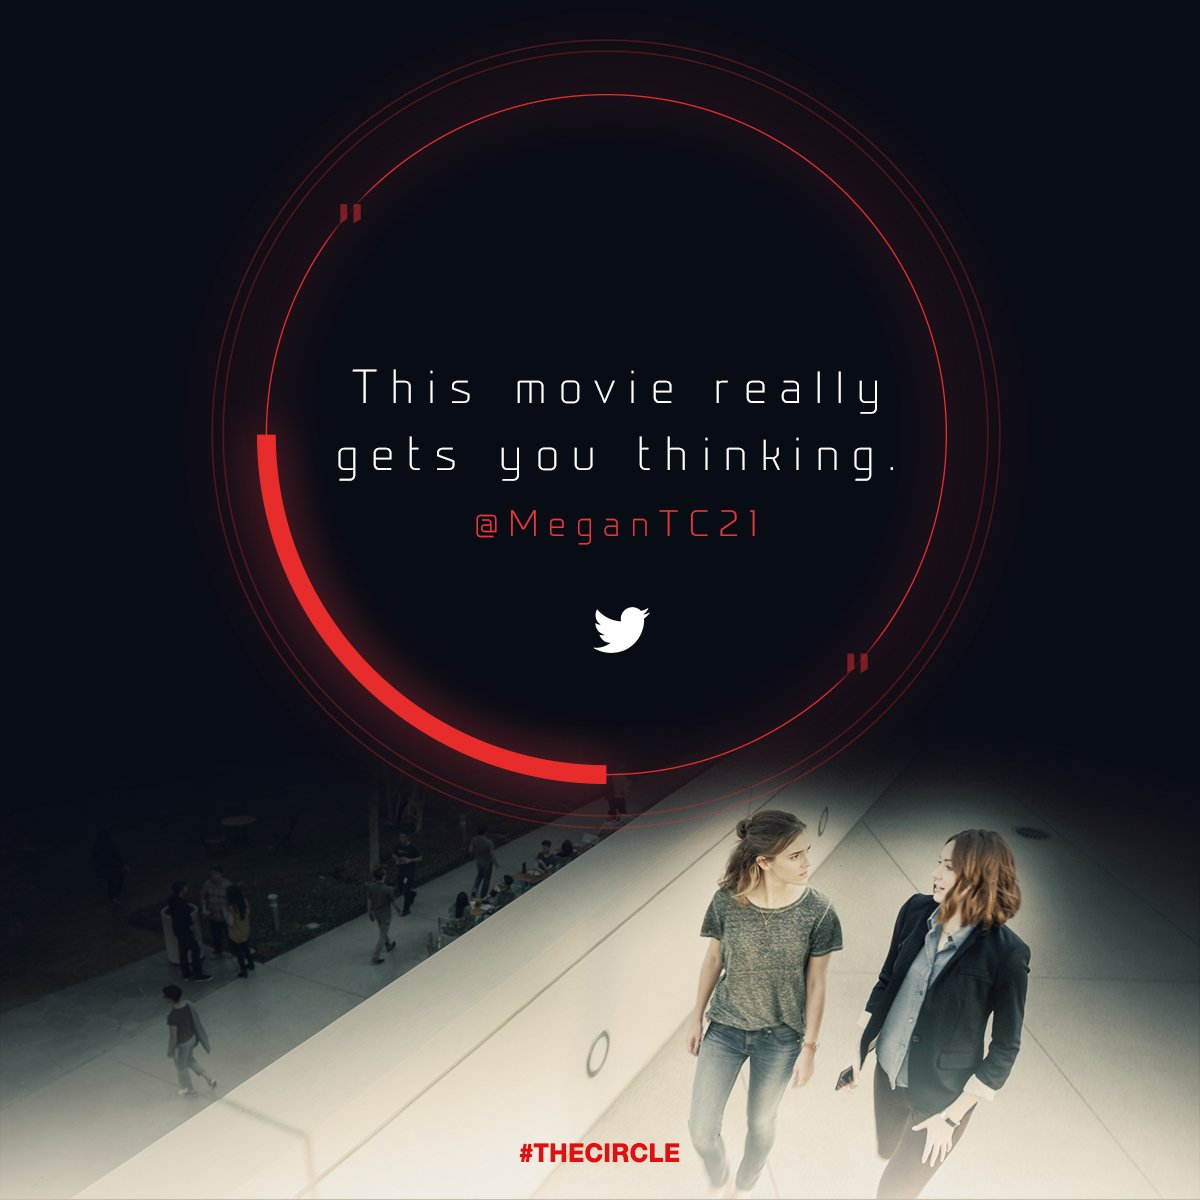 Discover the secrets behind #TheCircle. Now playing - only in theaters. TheCircleTickets.com